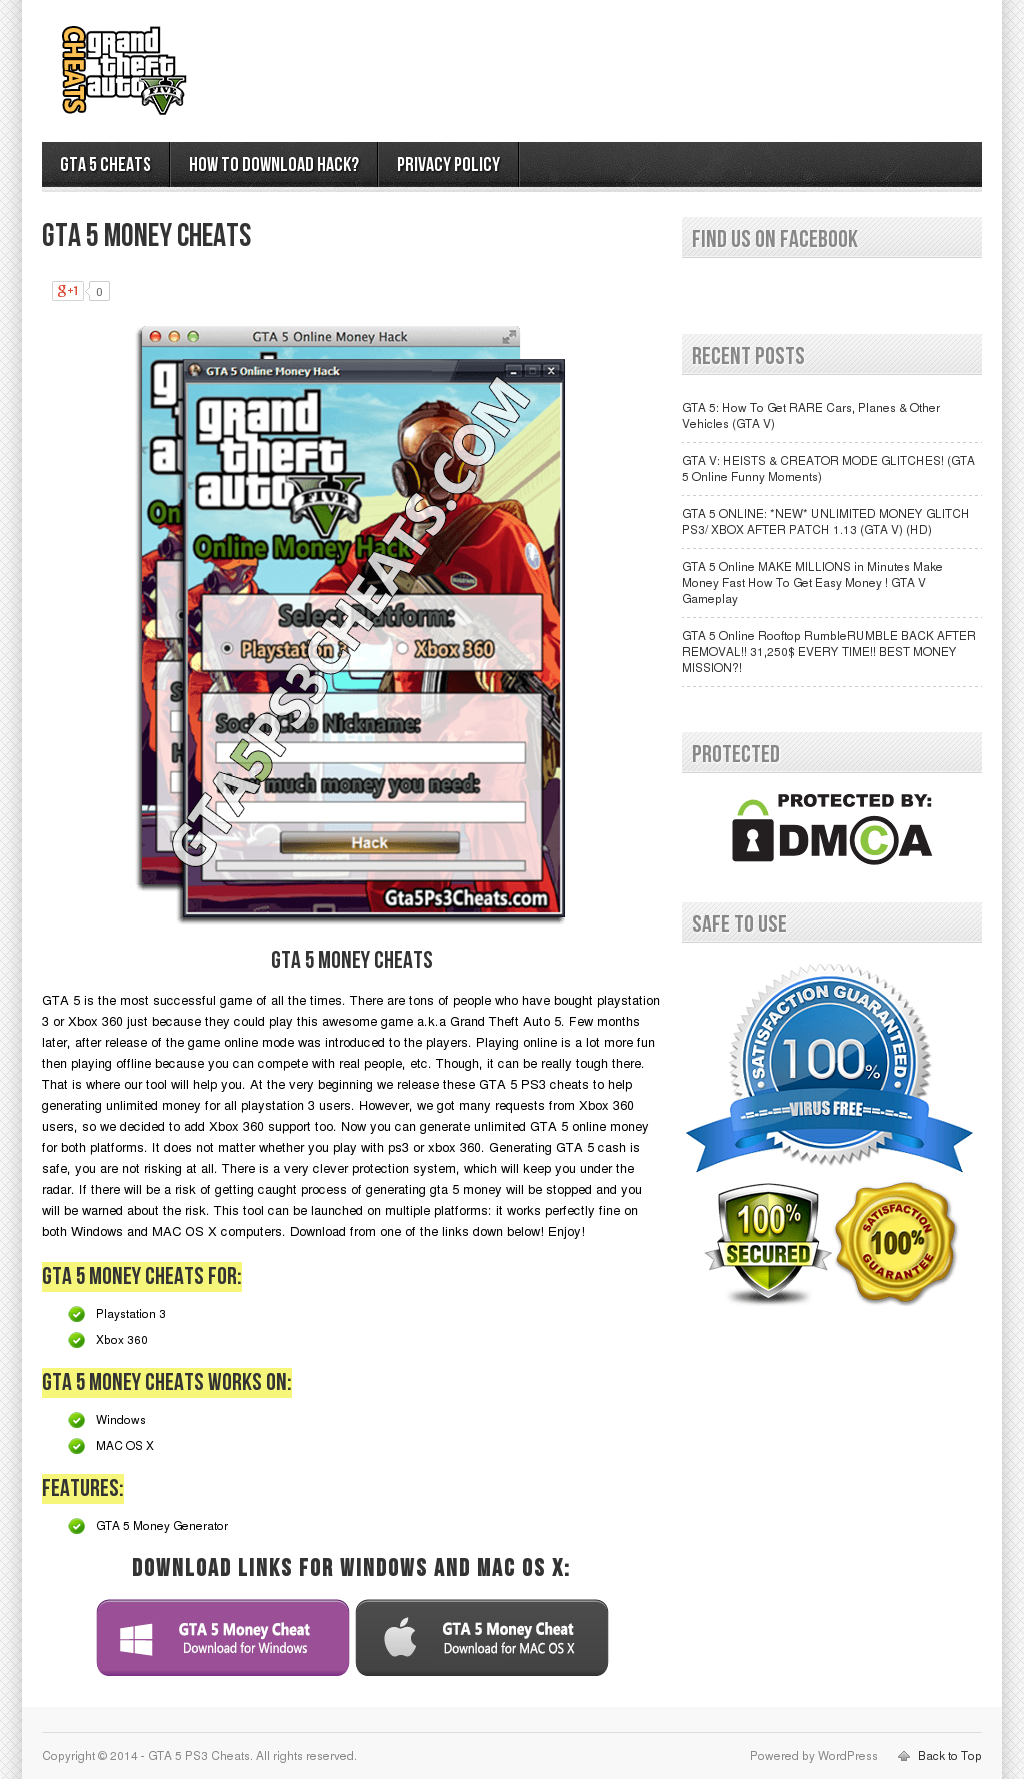 Gta 5 Money Hack Competitors, Revenue and Employees - Owler Company